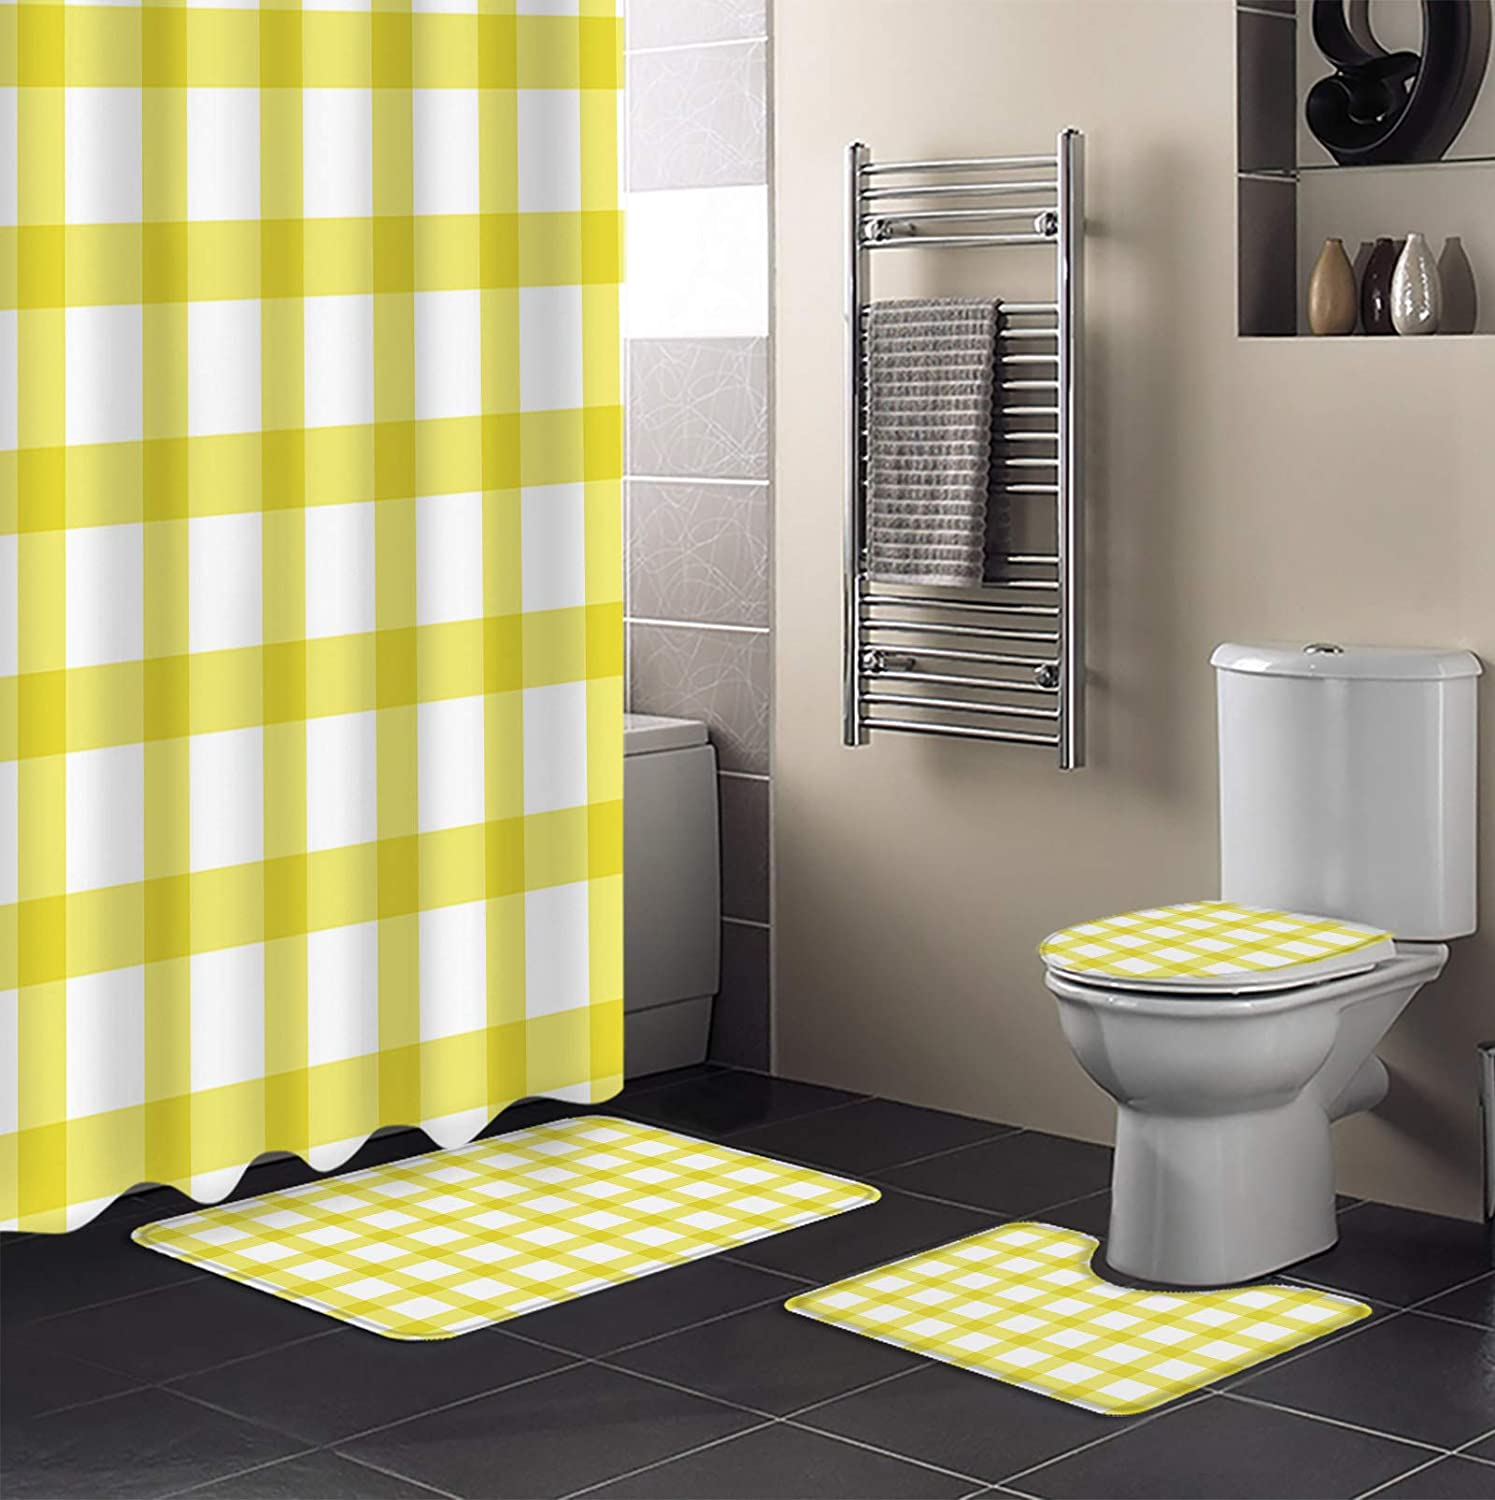 Sale Special Classic Price 4 Piece Shower Curtain Sets with Lid Toilet Non-Slip Cover Rugs